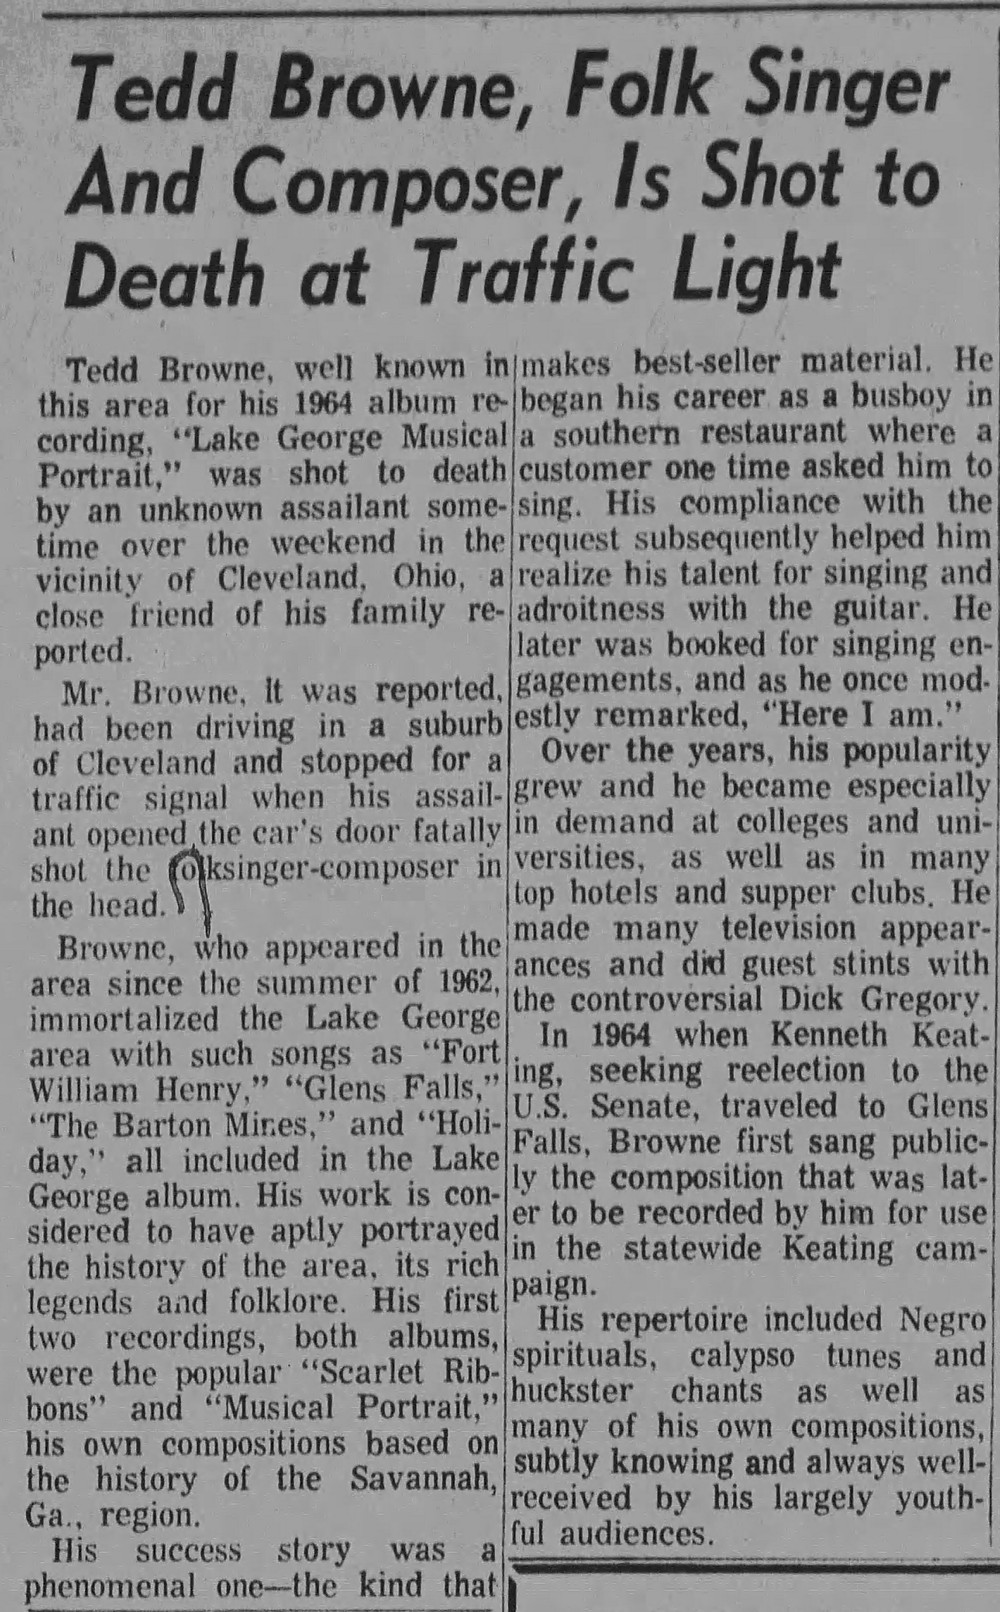 The Glens Falls Times reported Tedd Browne's death in the Monday, July 29, 1968 edition.